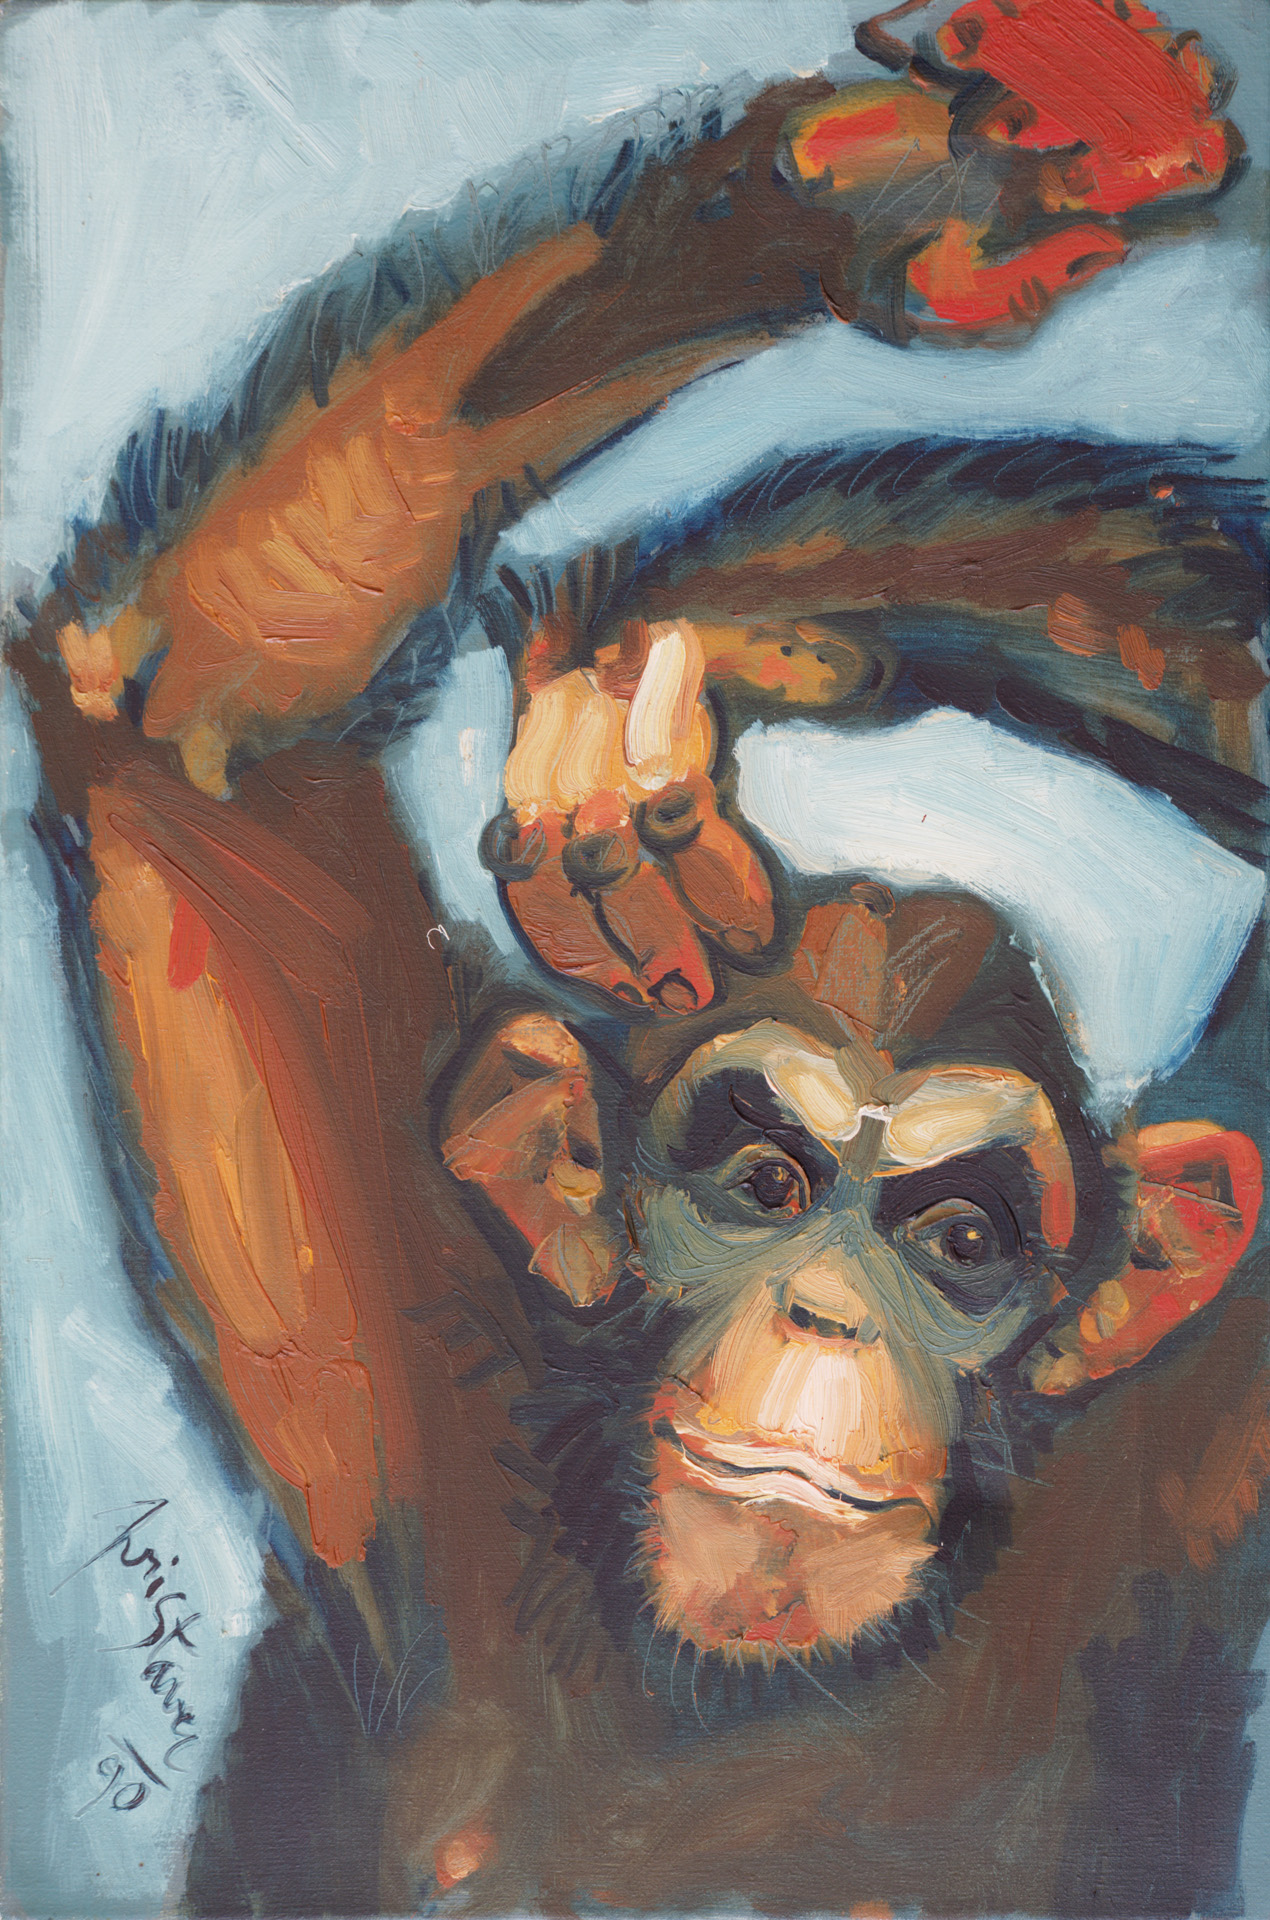 Chimpanzee  / 1990 / oil on canvas / 40 x 60 cm